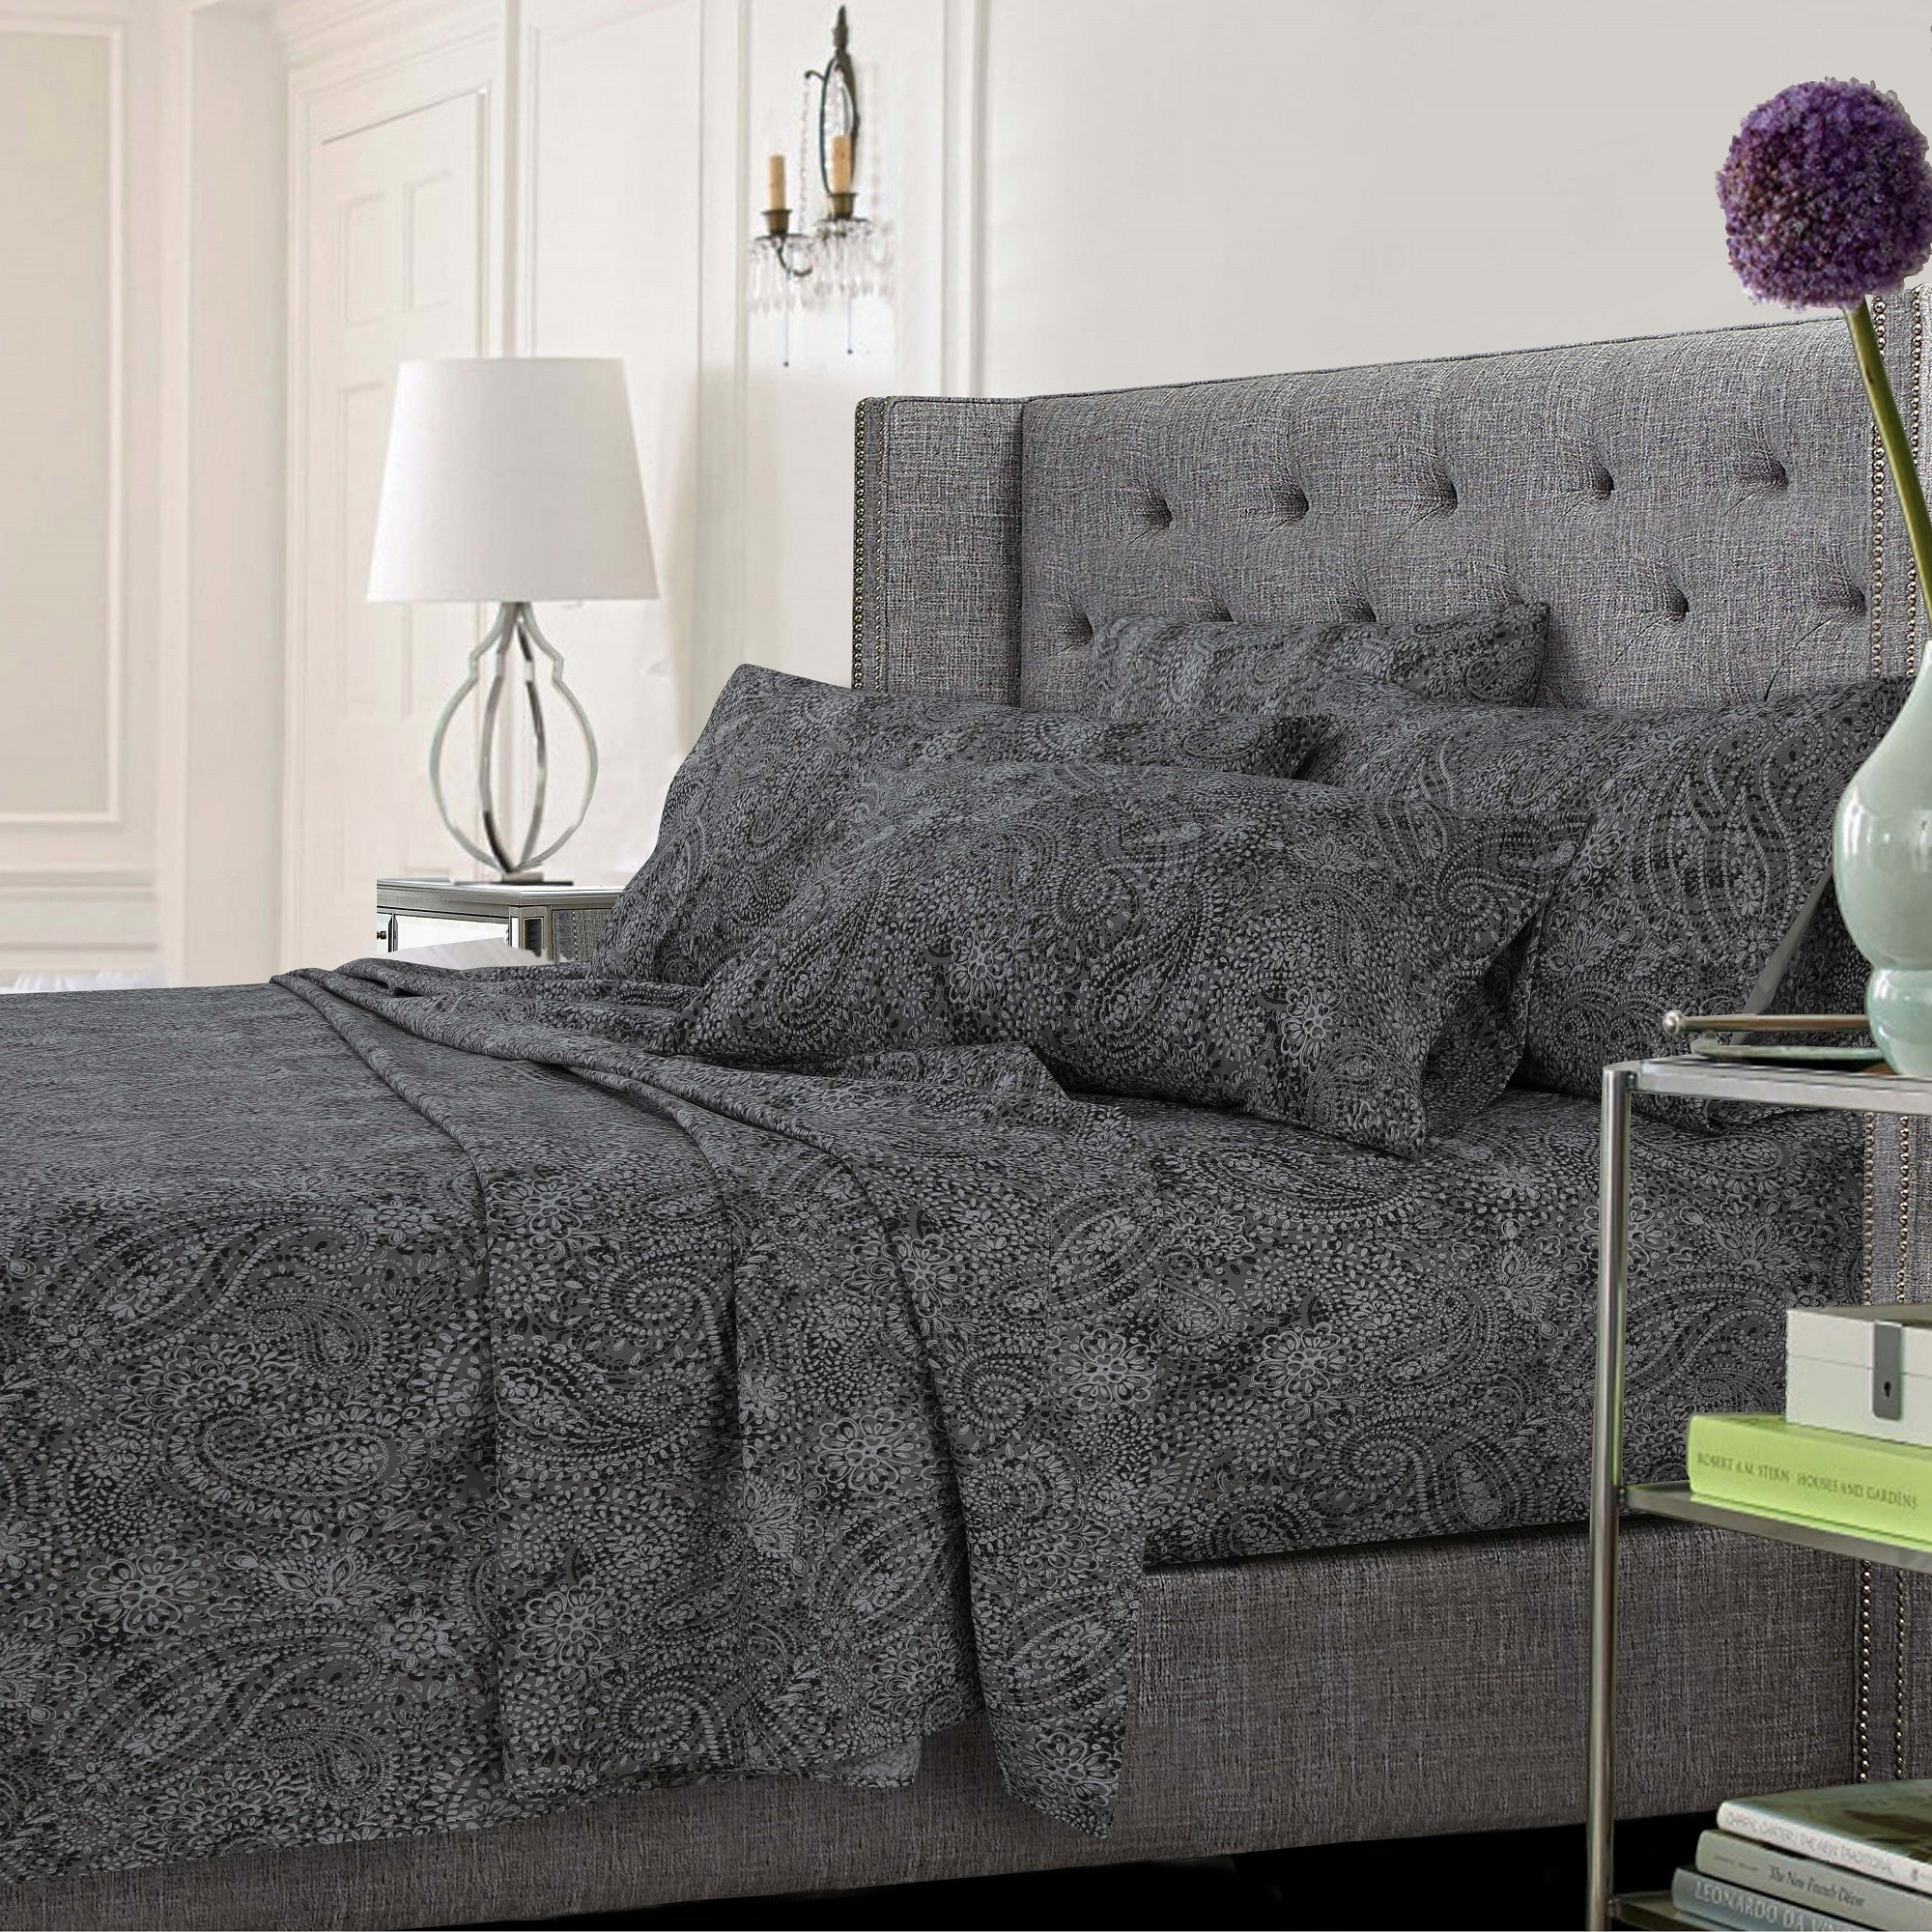 Alcott Hill Coatsburg Ultra Soft Solid Or Printed Extra Deep Pocket Sheet Set Size Twin Xl Color Paisley Gray